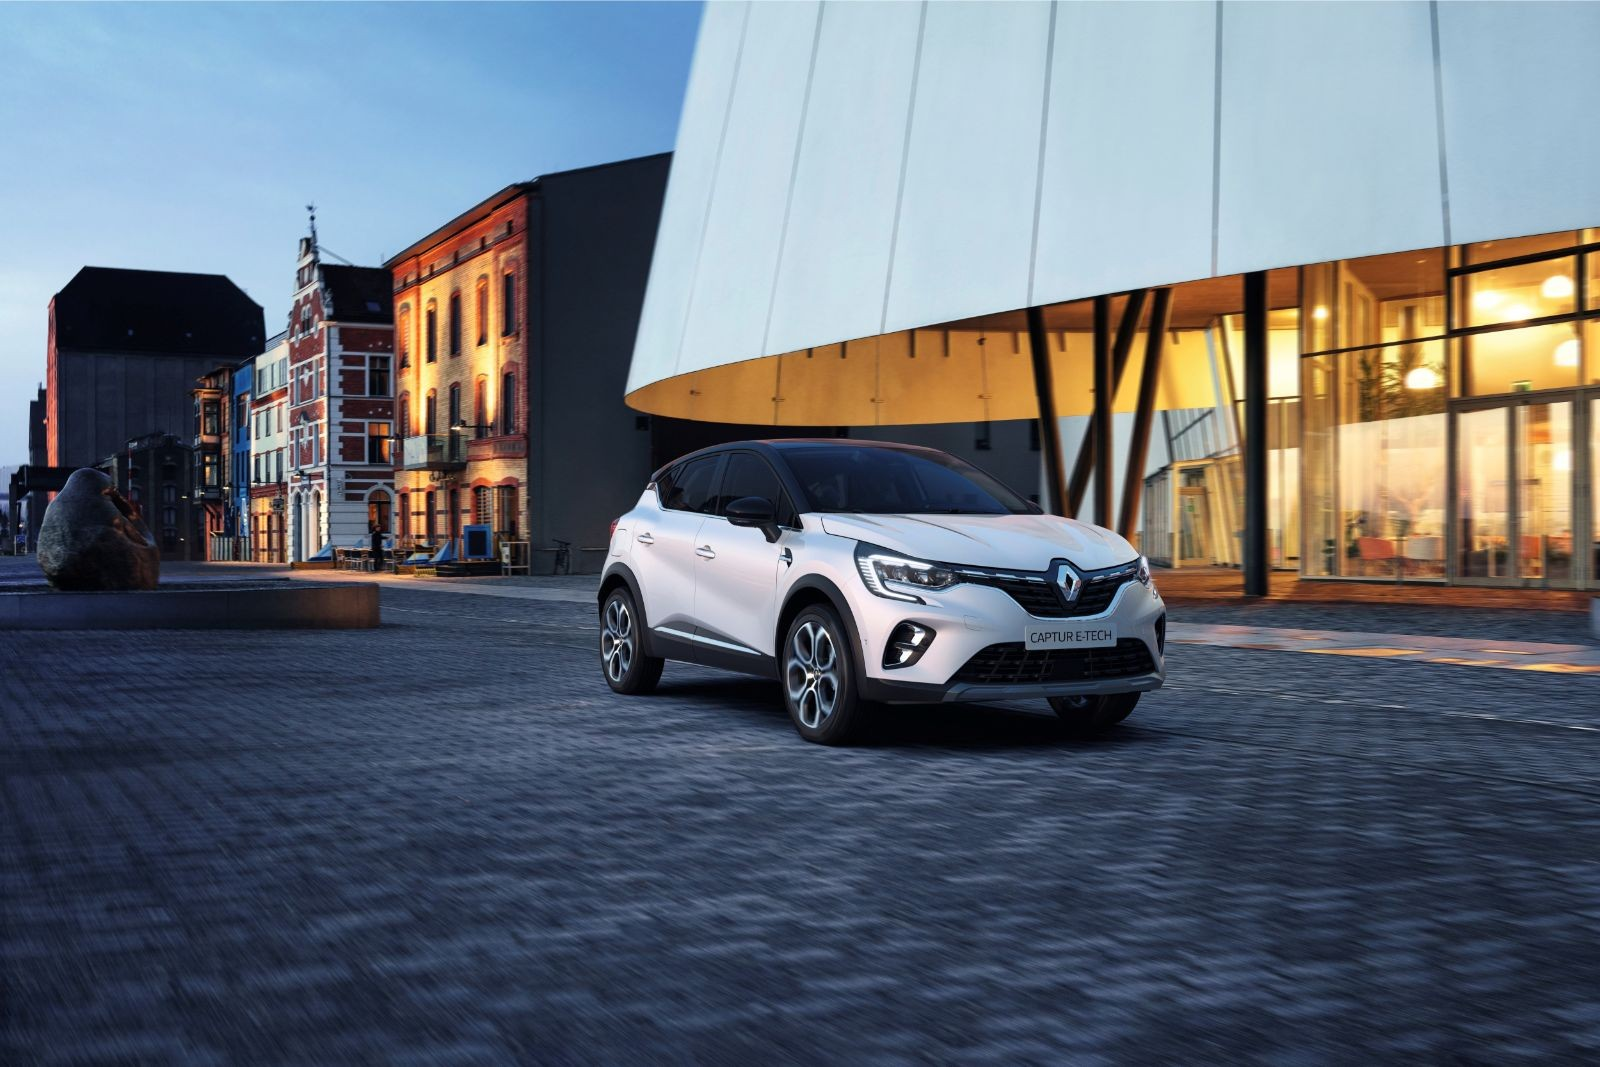 Renault Captur E-Tech Plug in - Renault Captur E-Tech Plug in